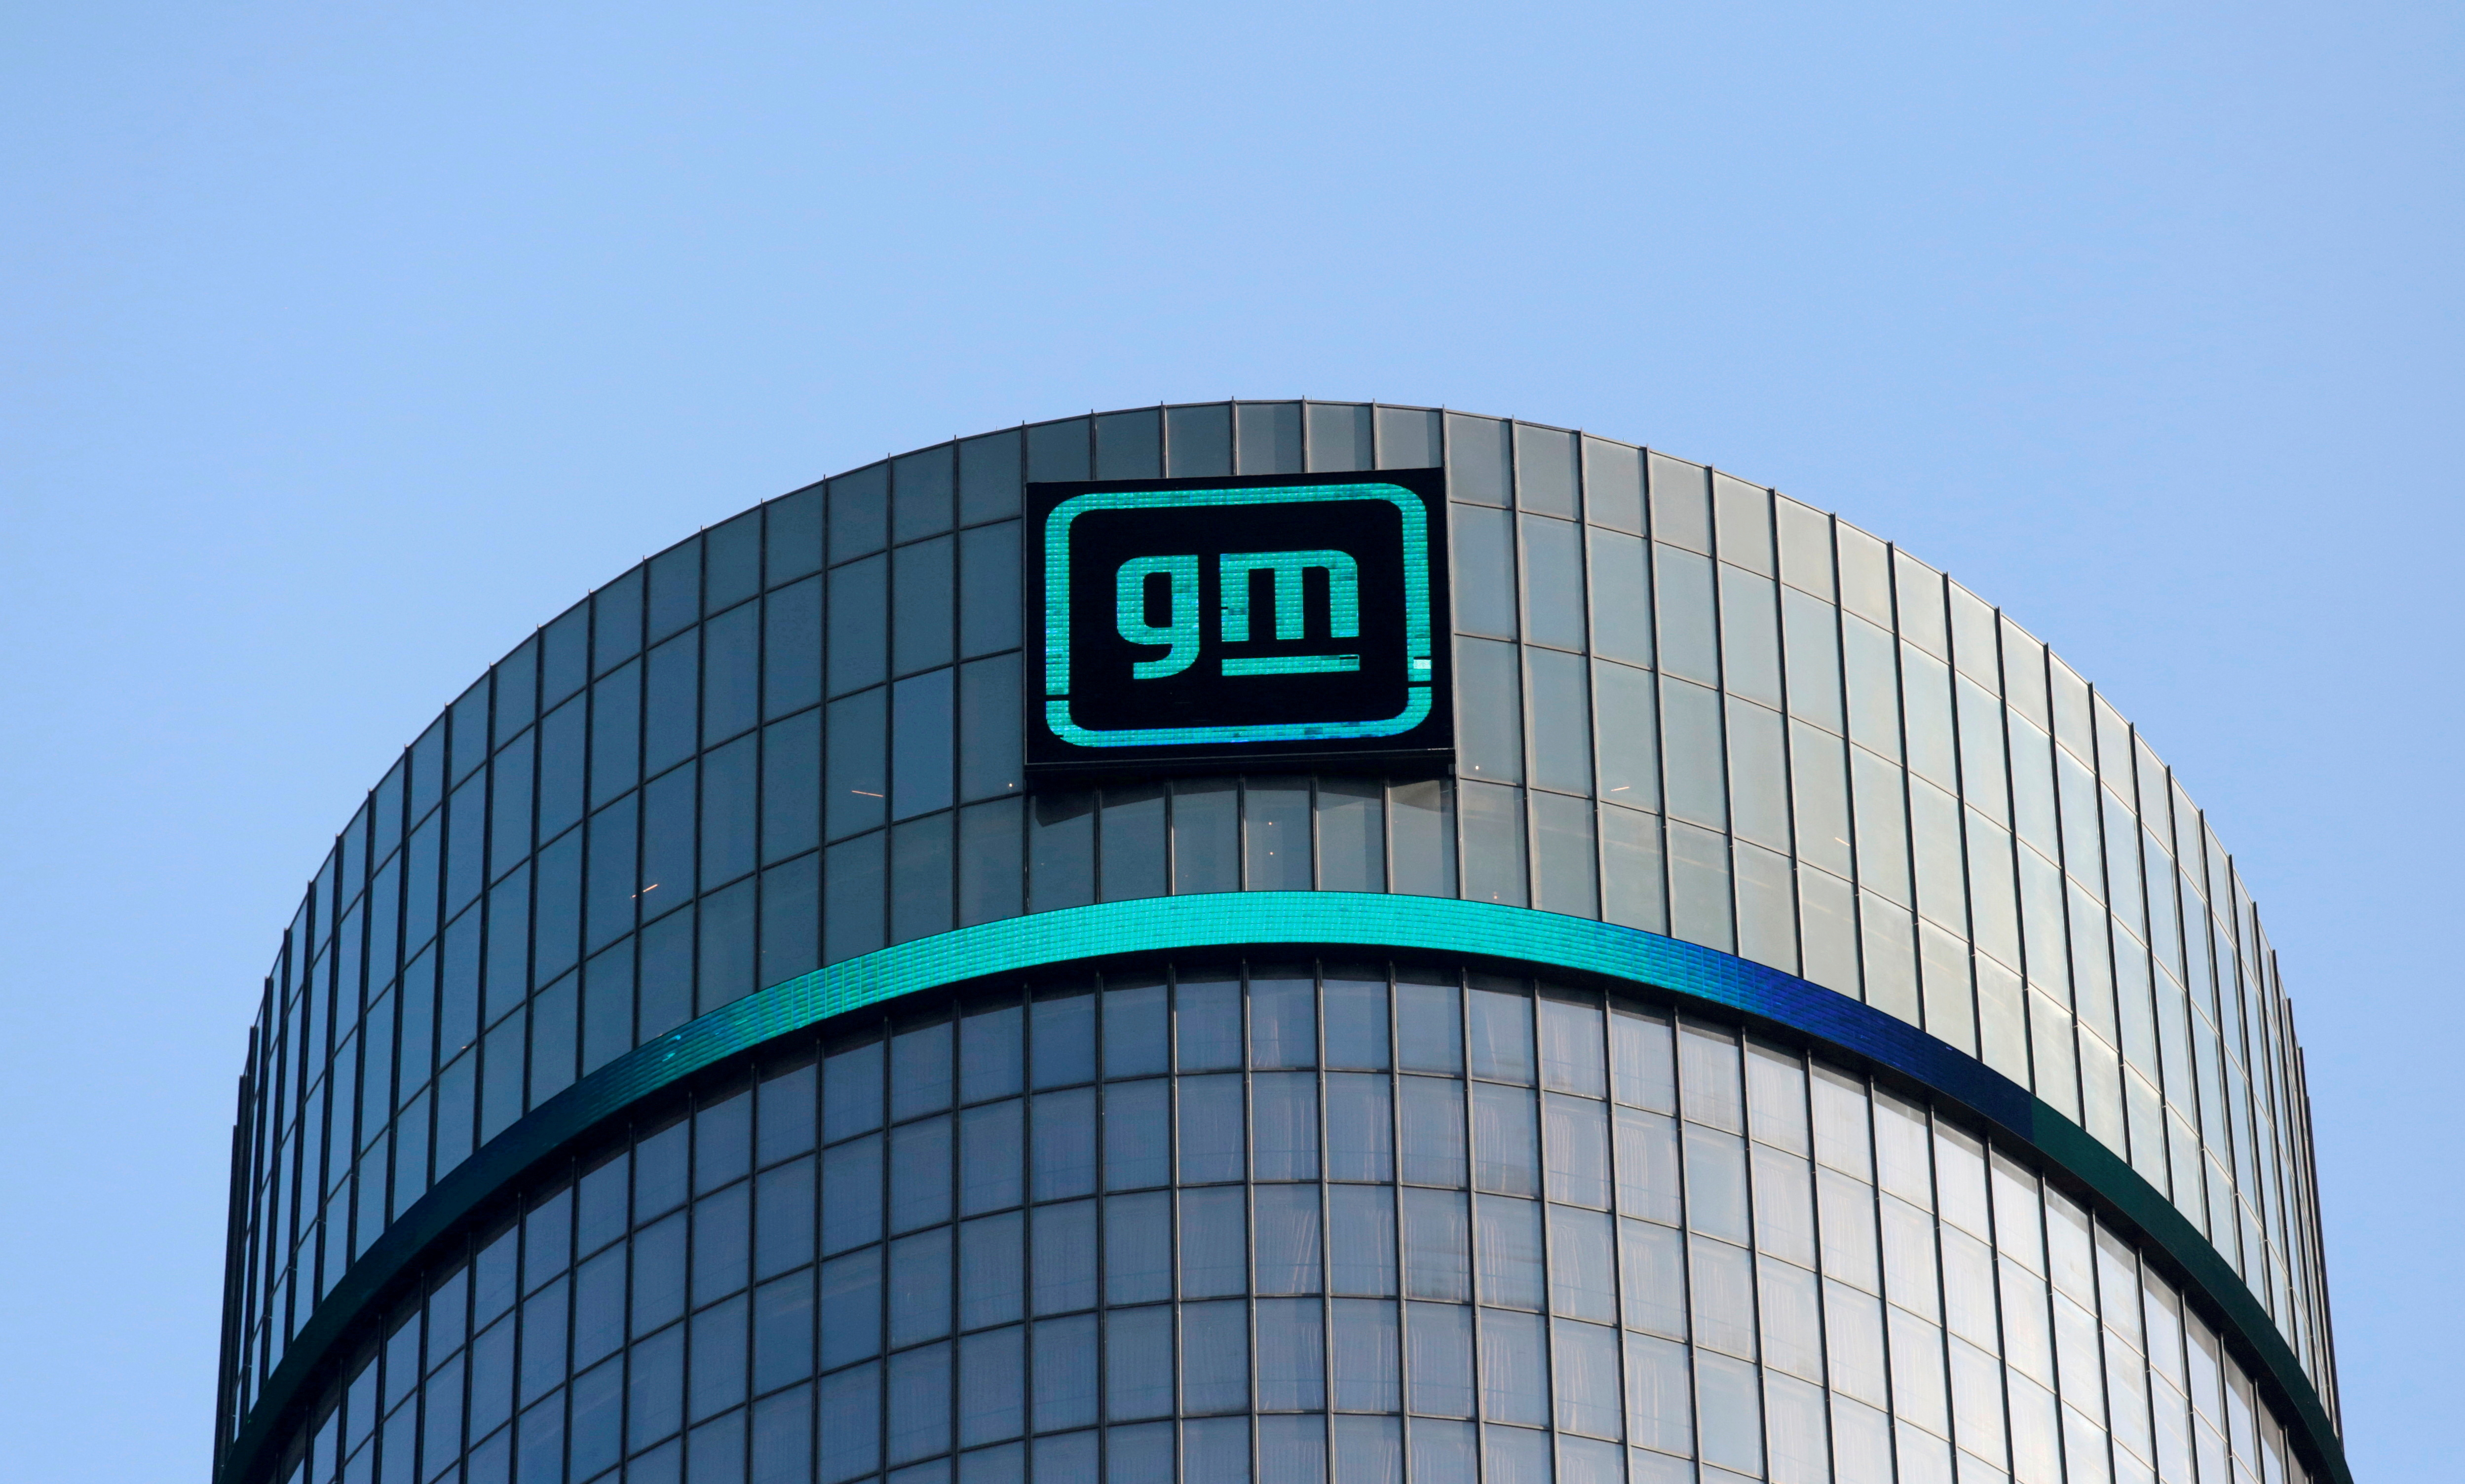 The new GM logo is seen on the facade of the General Motors headquarters in Detroit, Michigan. REUTERS/Rebecca Cook